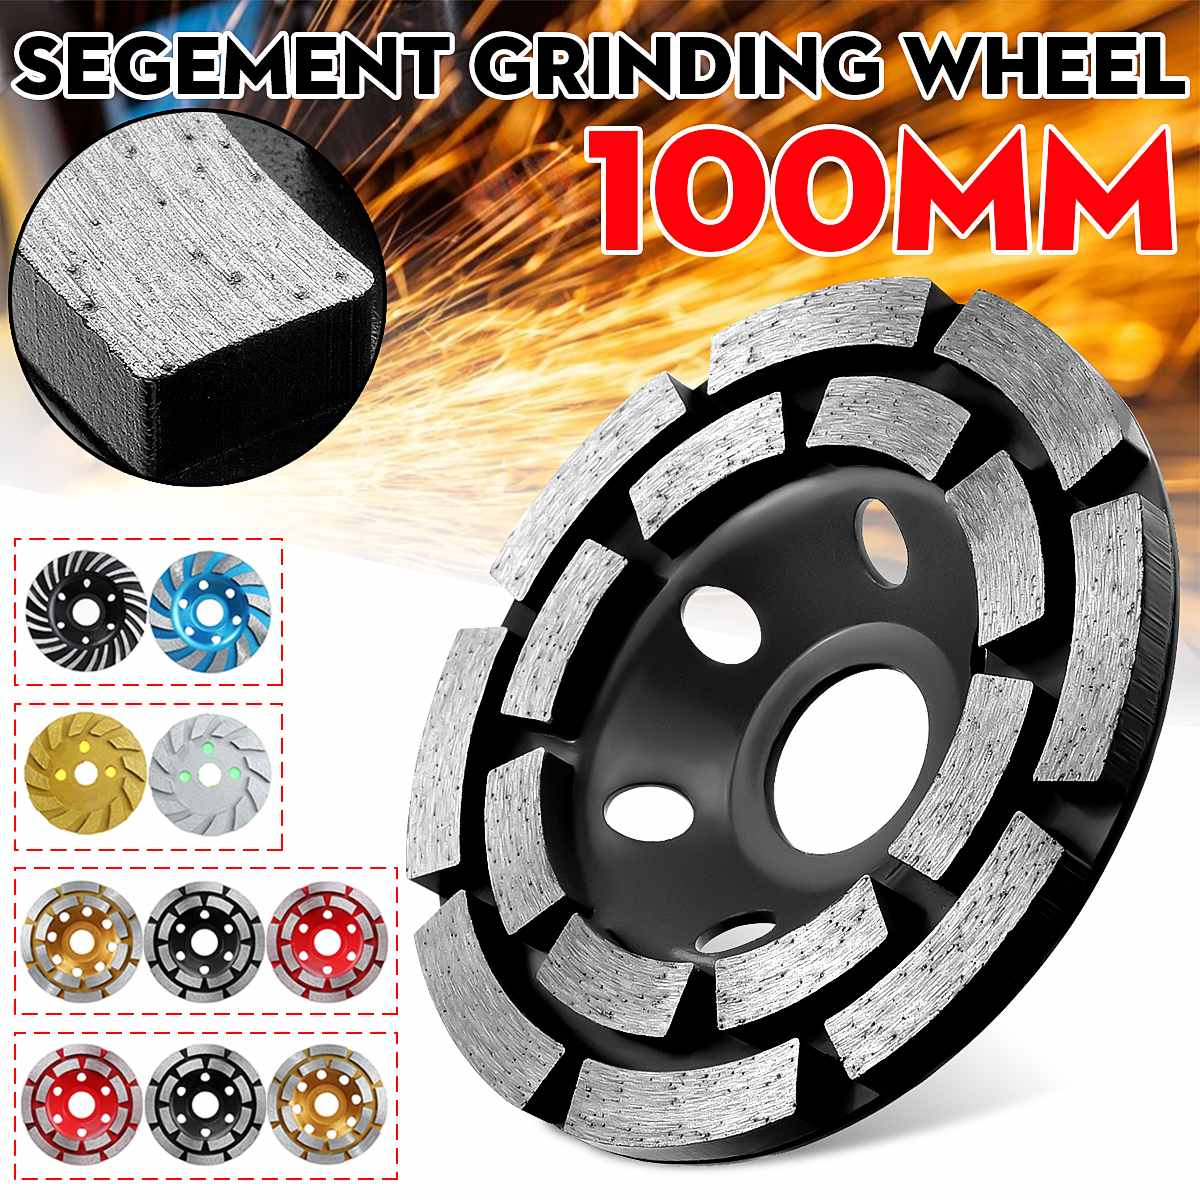 4 Inch Cup Diamond Grinding Wheel Cutting Disc Tool for Concrete Masonry Stone